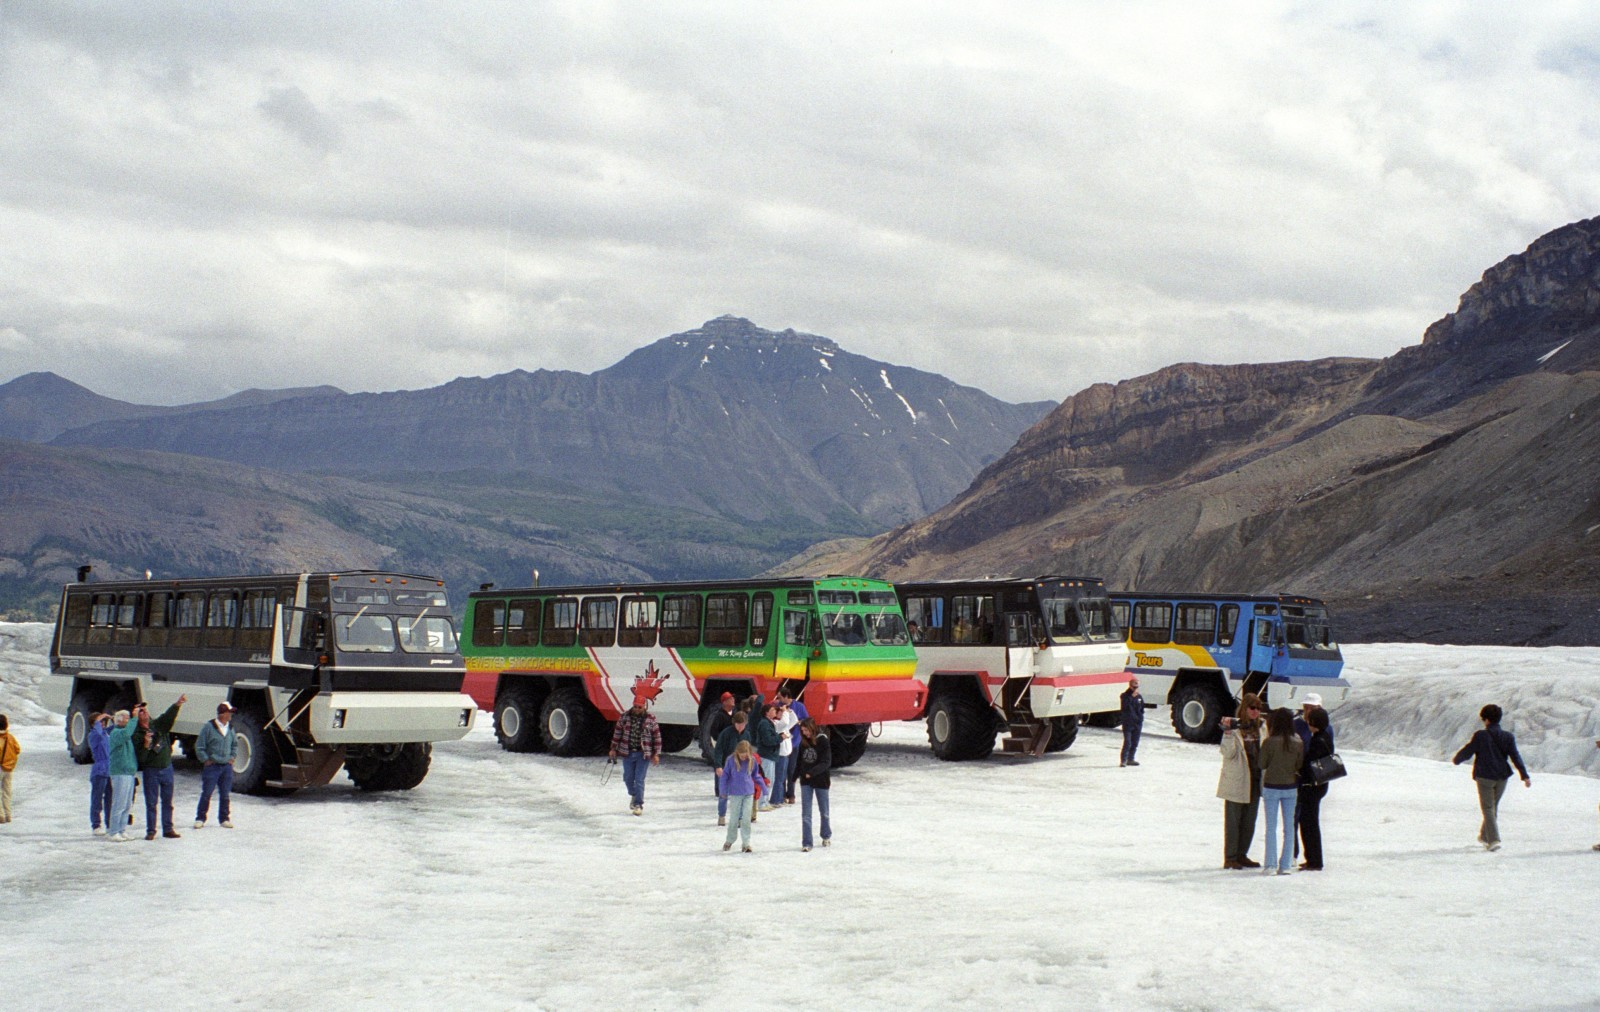 Snocoaches